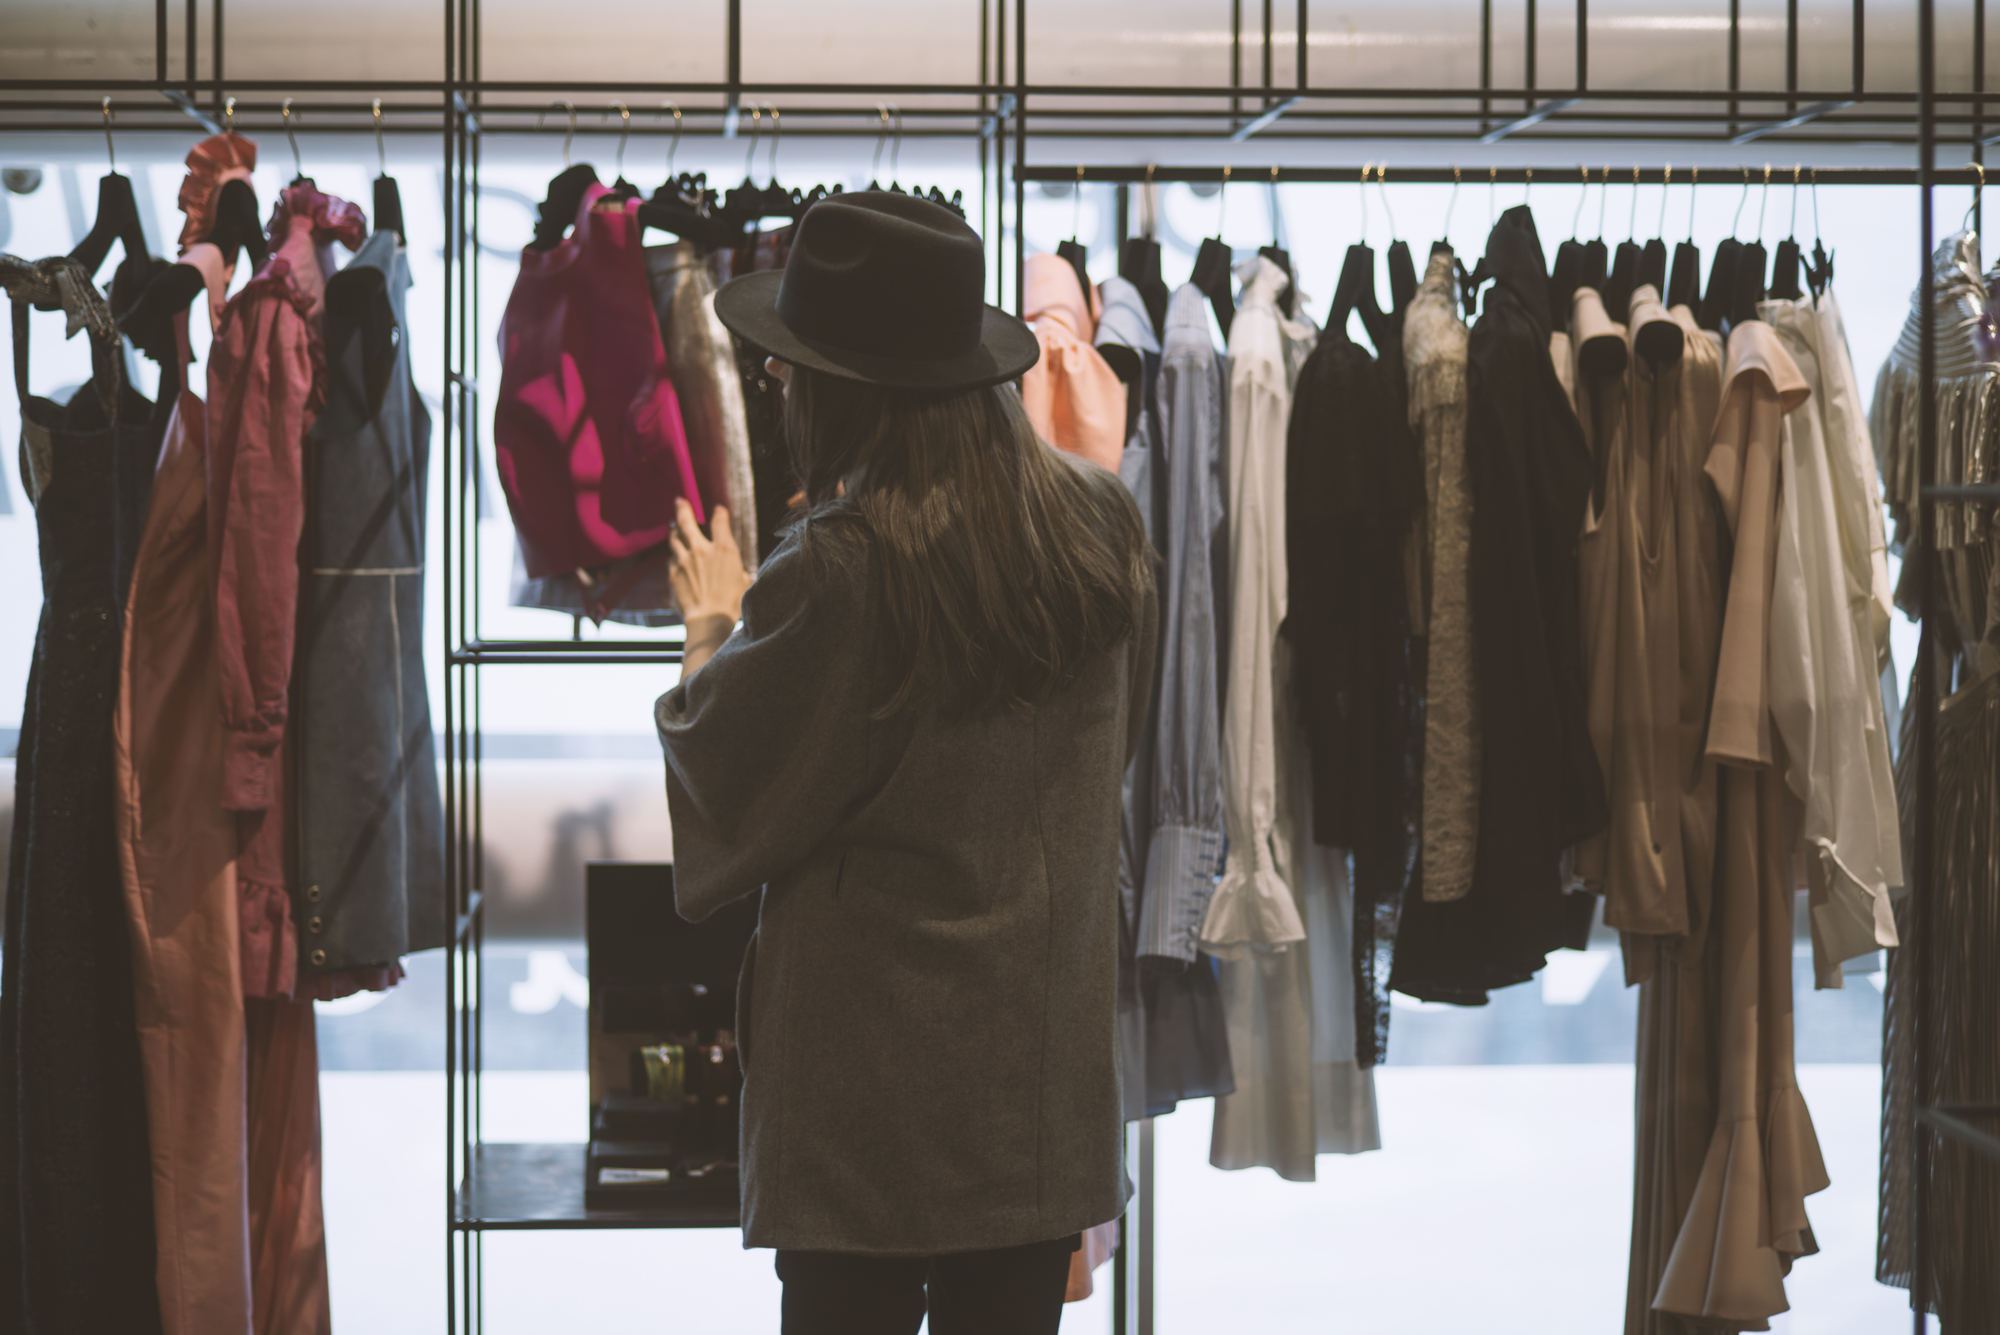 retail shop fittings and accessories